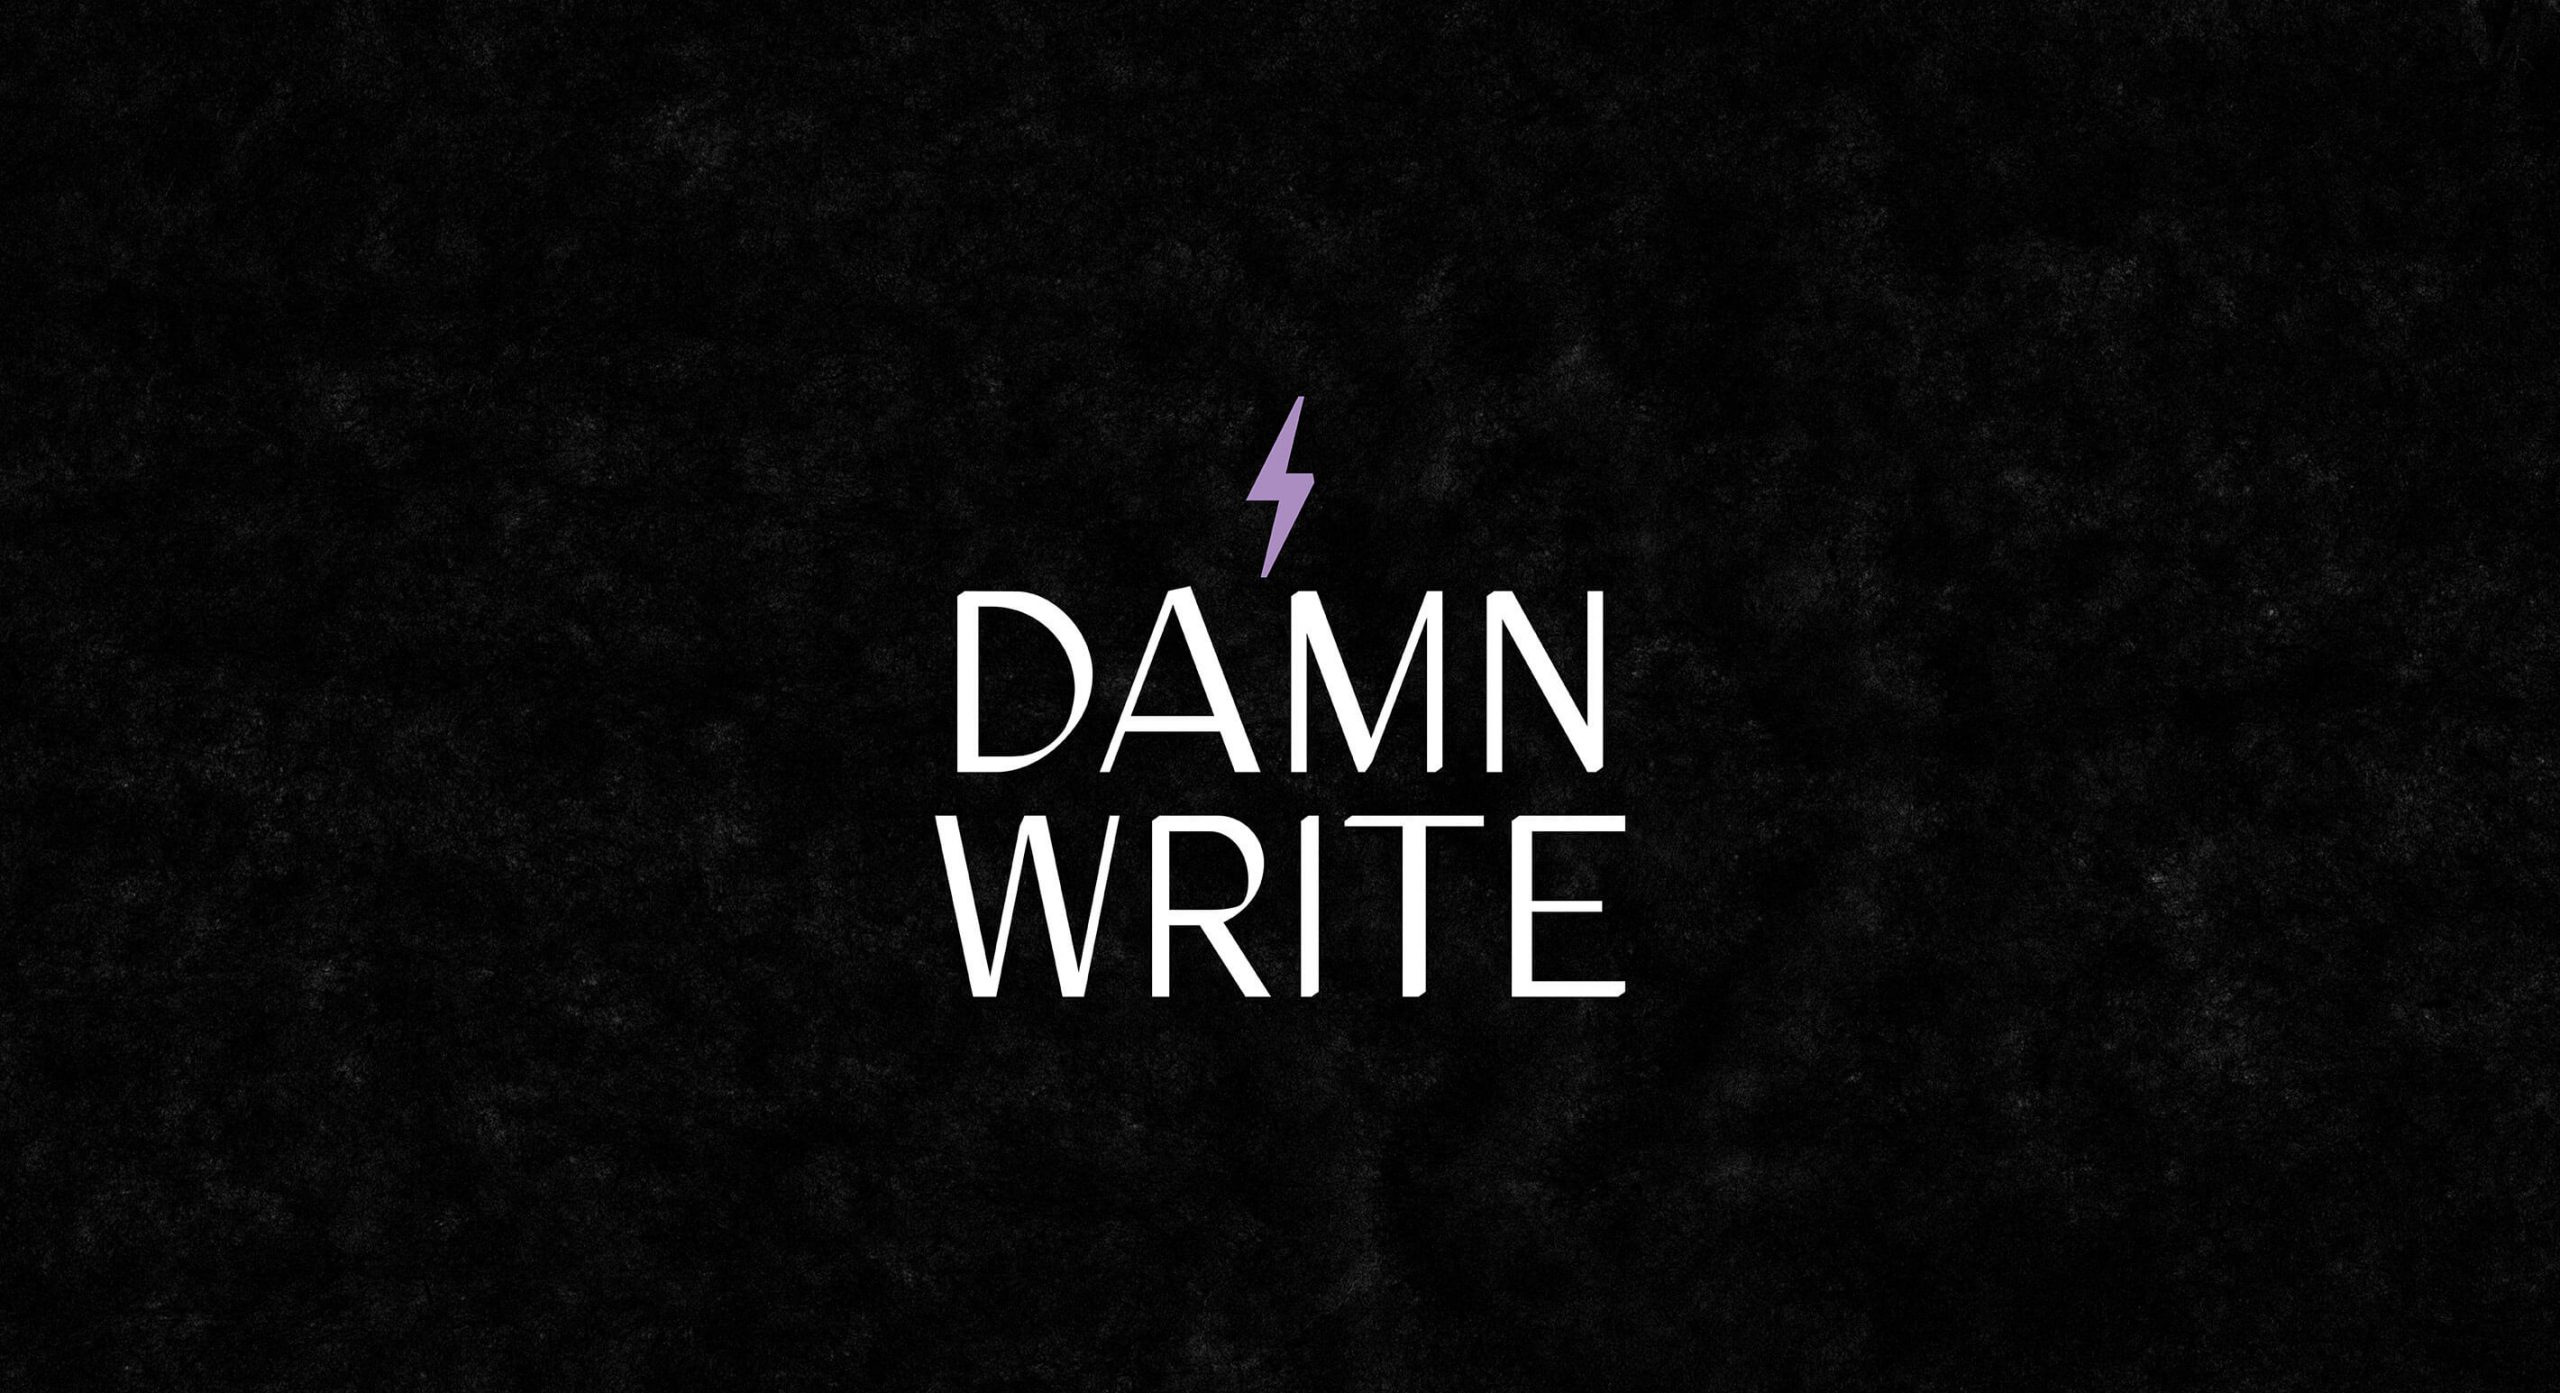 Minimal clean logotype for Damn Write with small lightening bolt icon